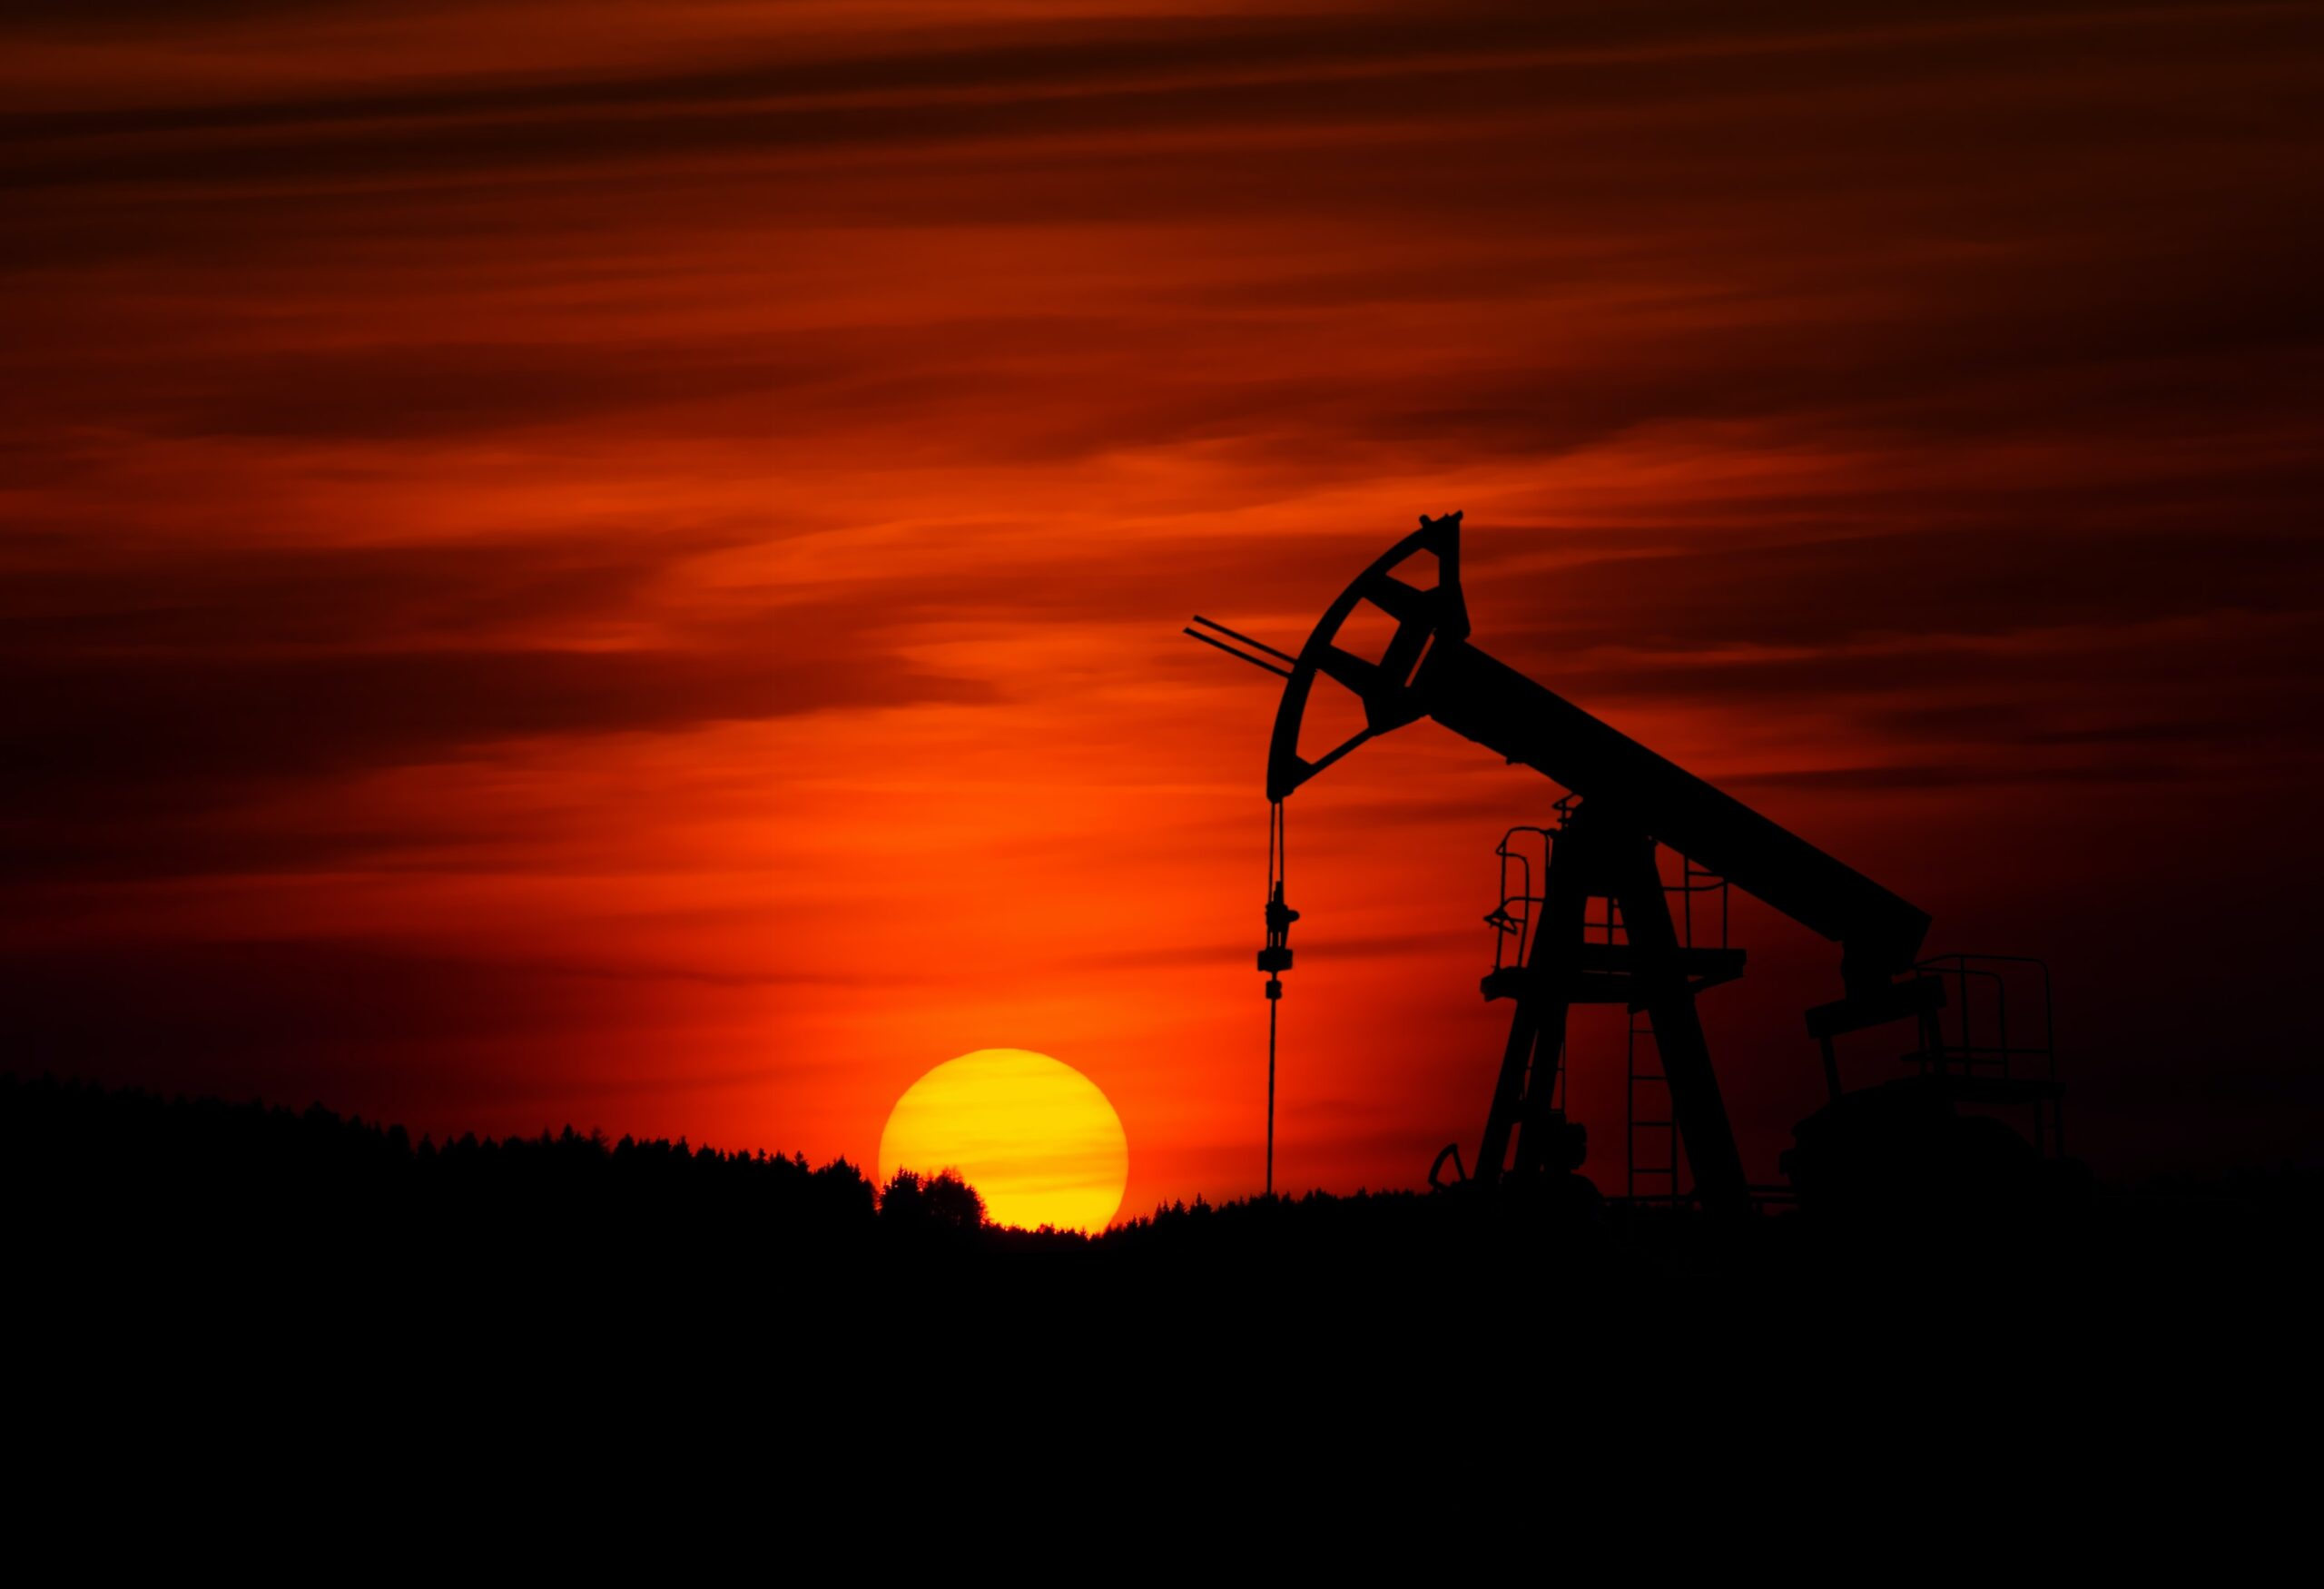 Getting Ahead of the Game: What Determines the Prices of Oil?